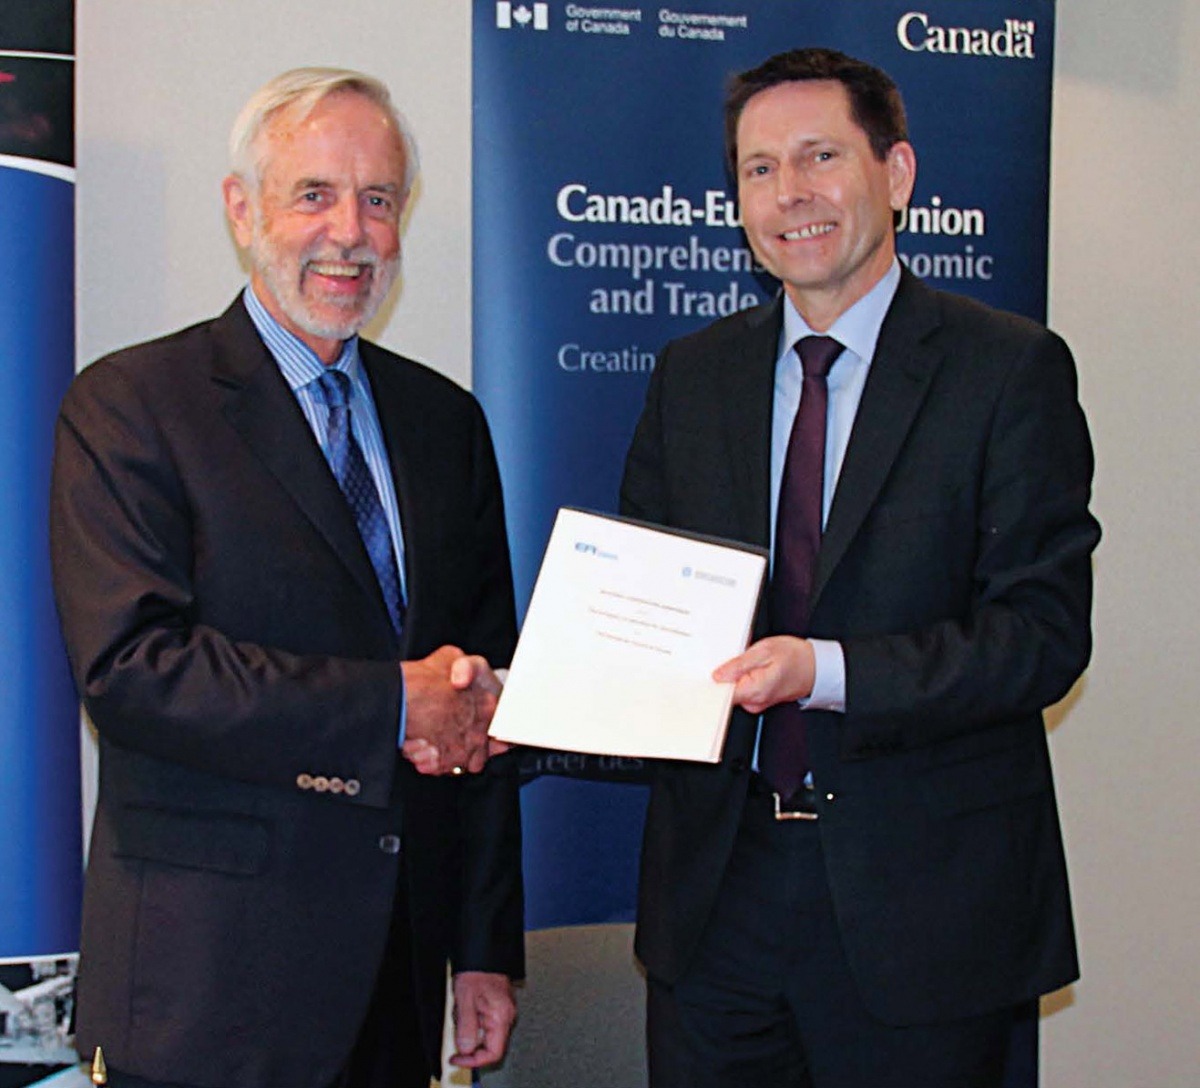 EA Executive Secretary Andreas Steinhorst and SCC CEO John Walter sign a Cooperation Agreement, June 2016.